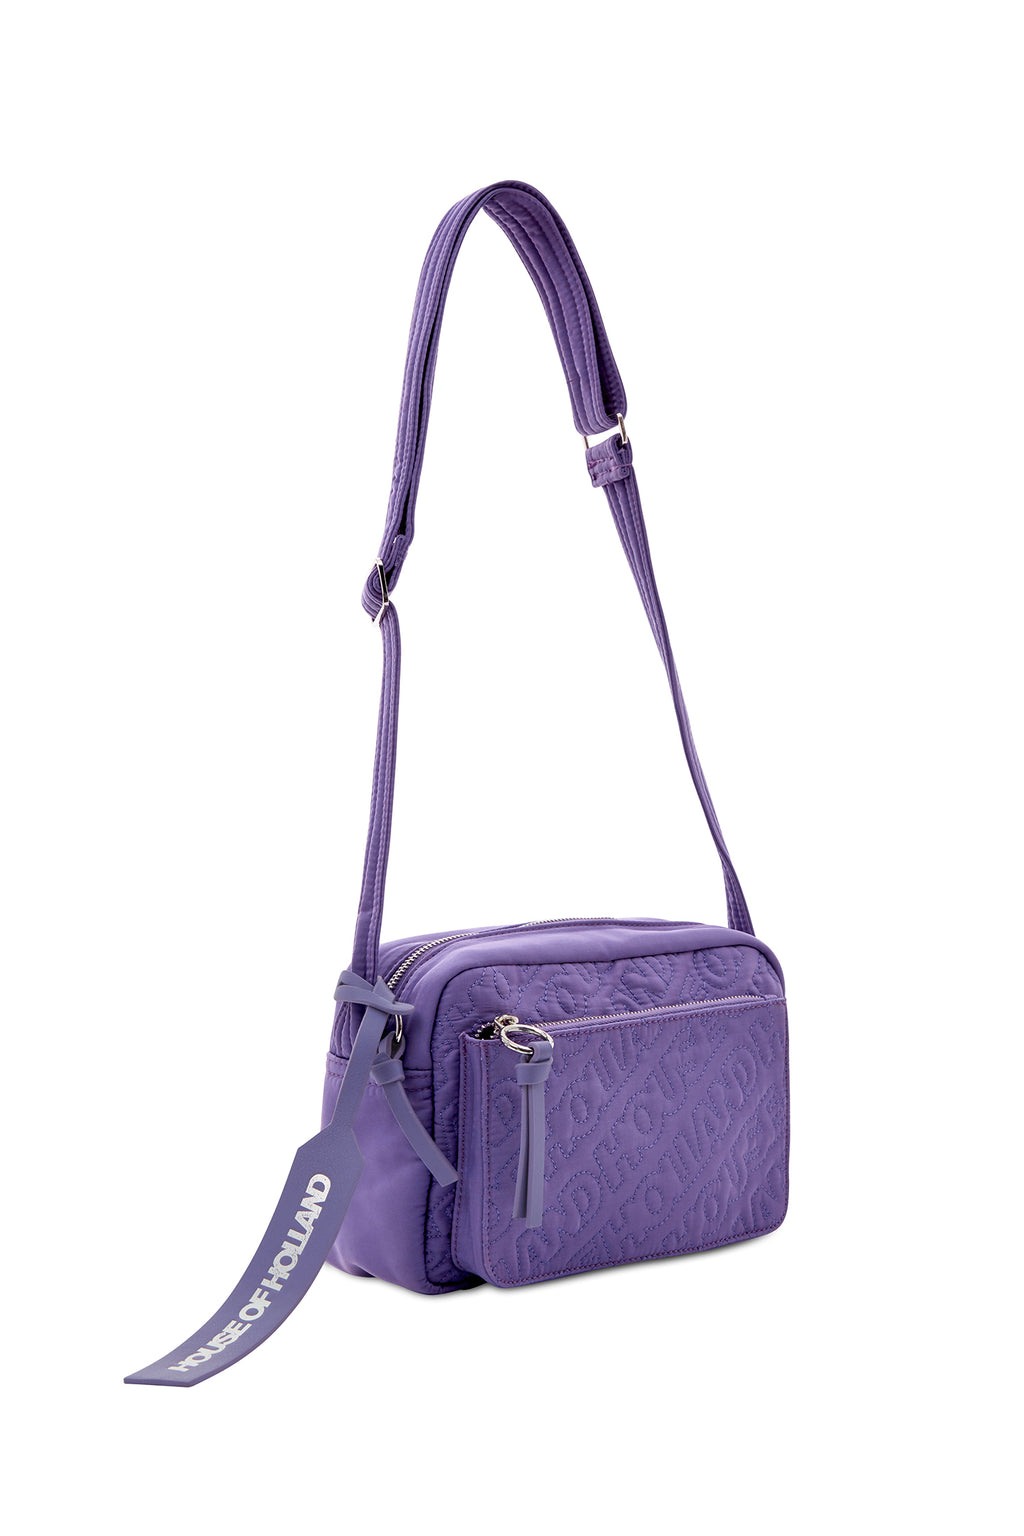 'HOH' Cross Body brodé violet